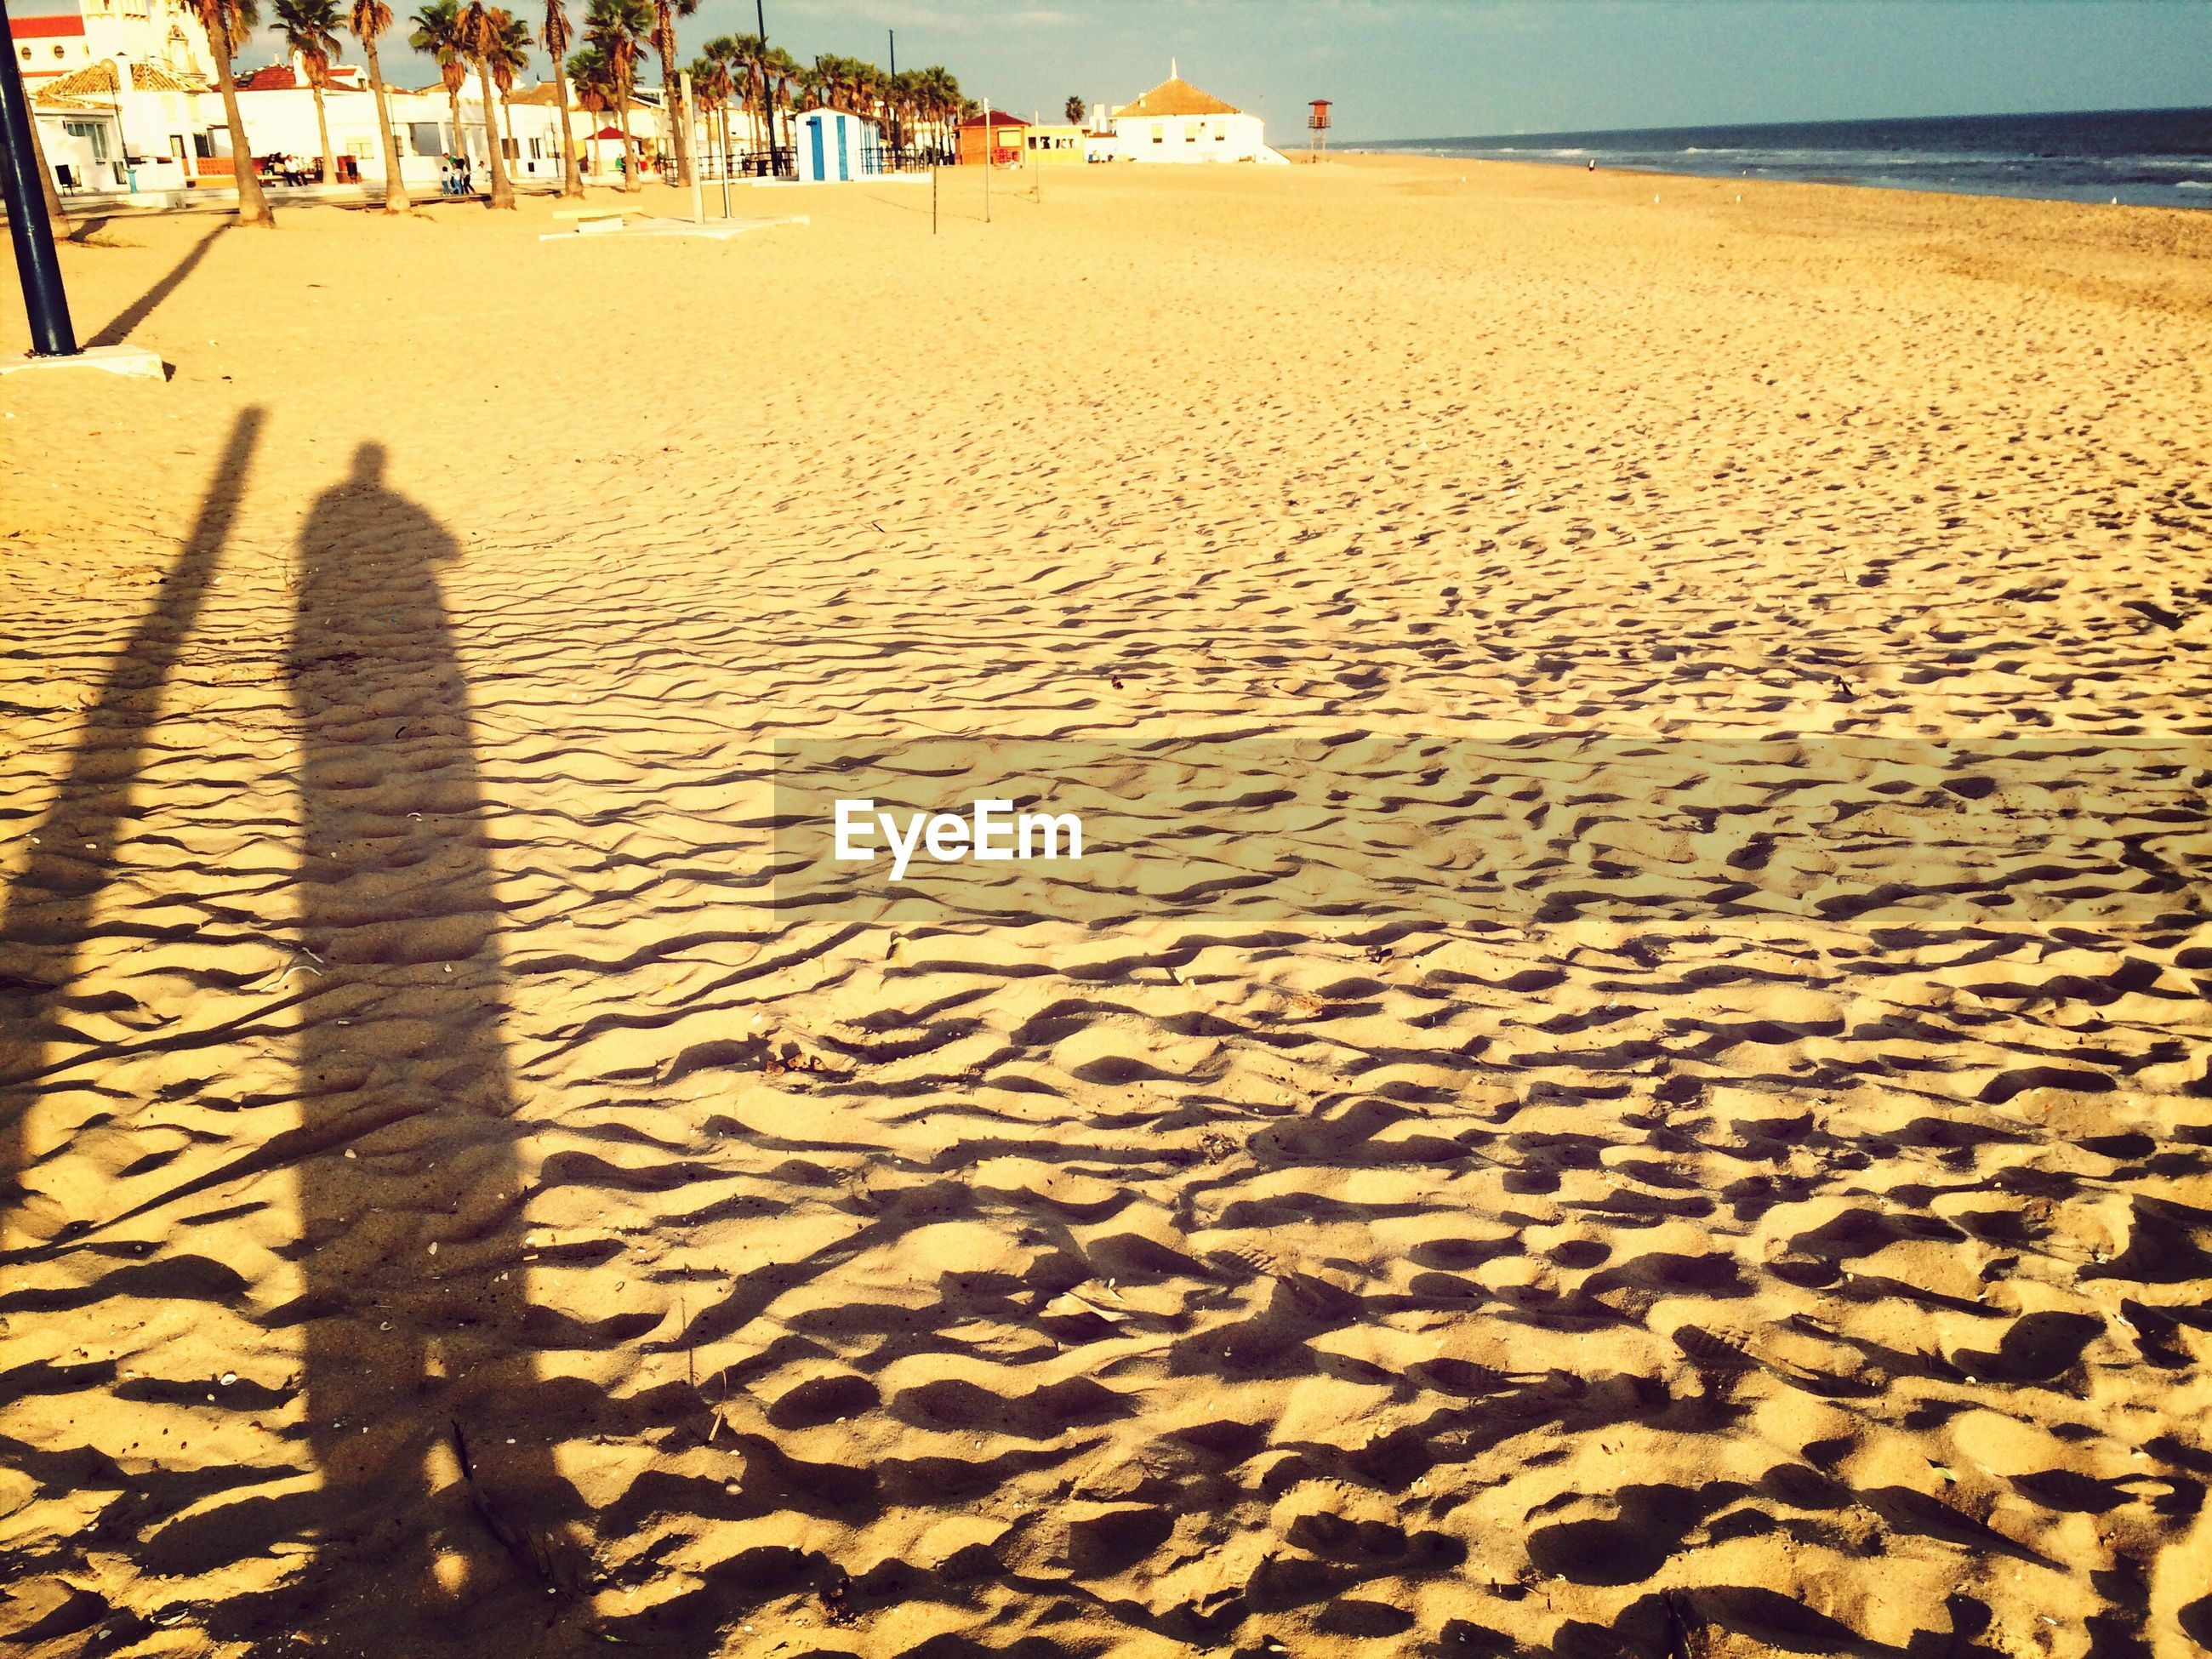 Shadow of person on sandy at beach